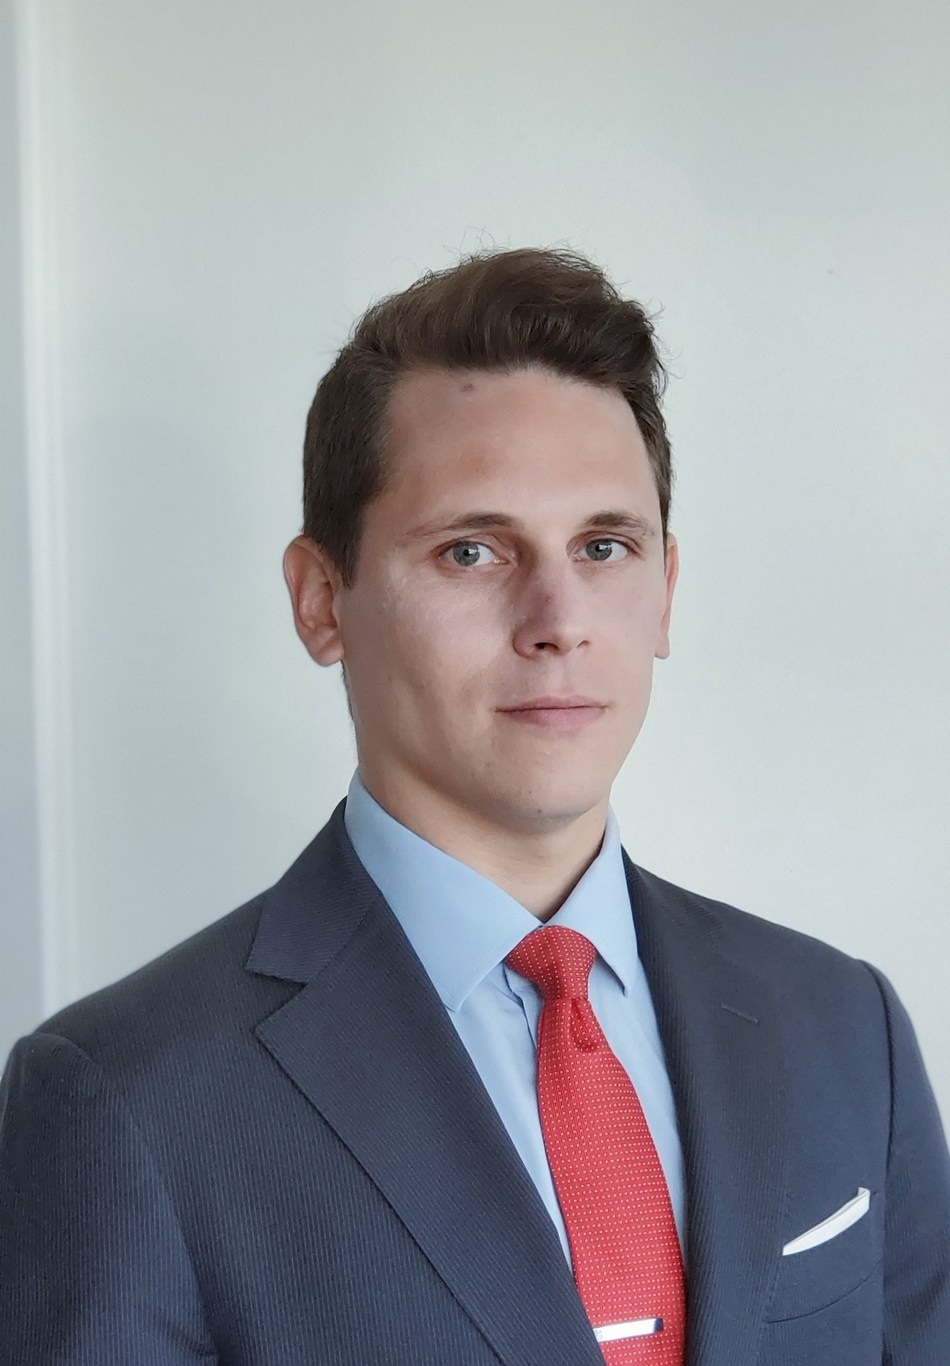 Scott Flanz has joined the New York office of Fish & Richardson P.C. as an associate in its Litigation Group.